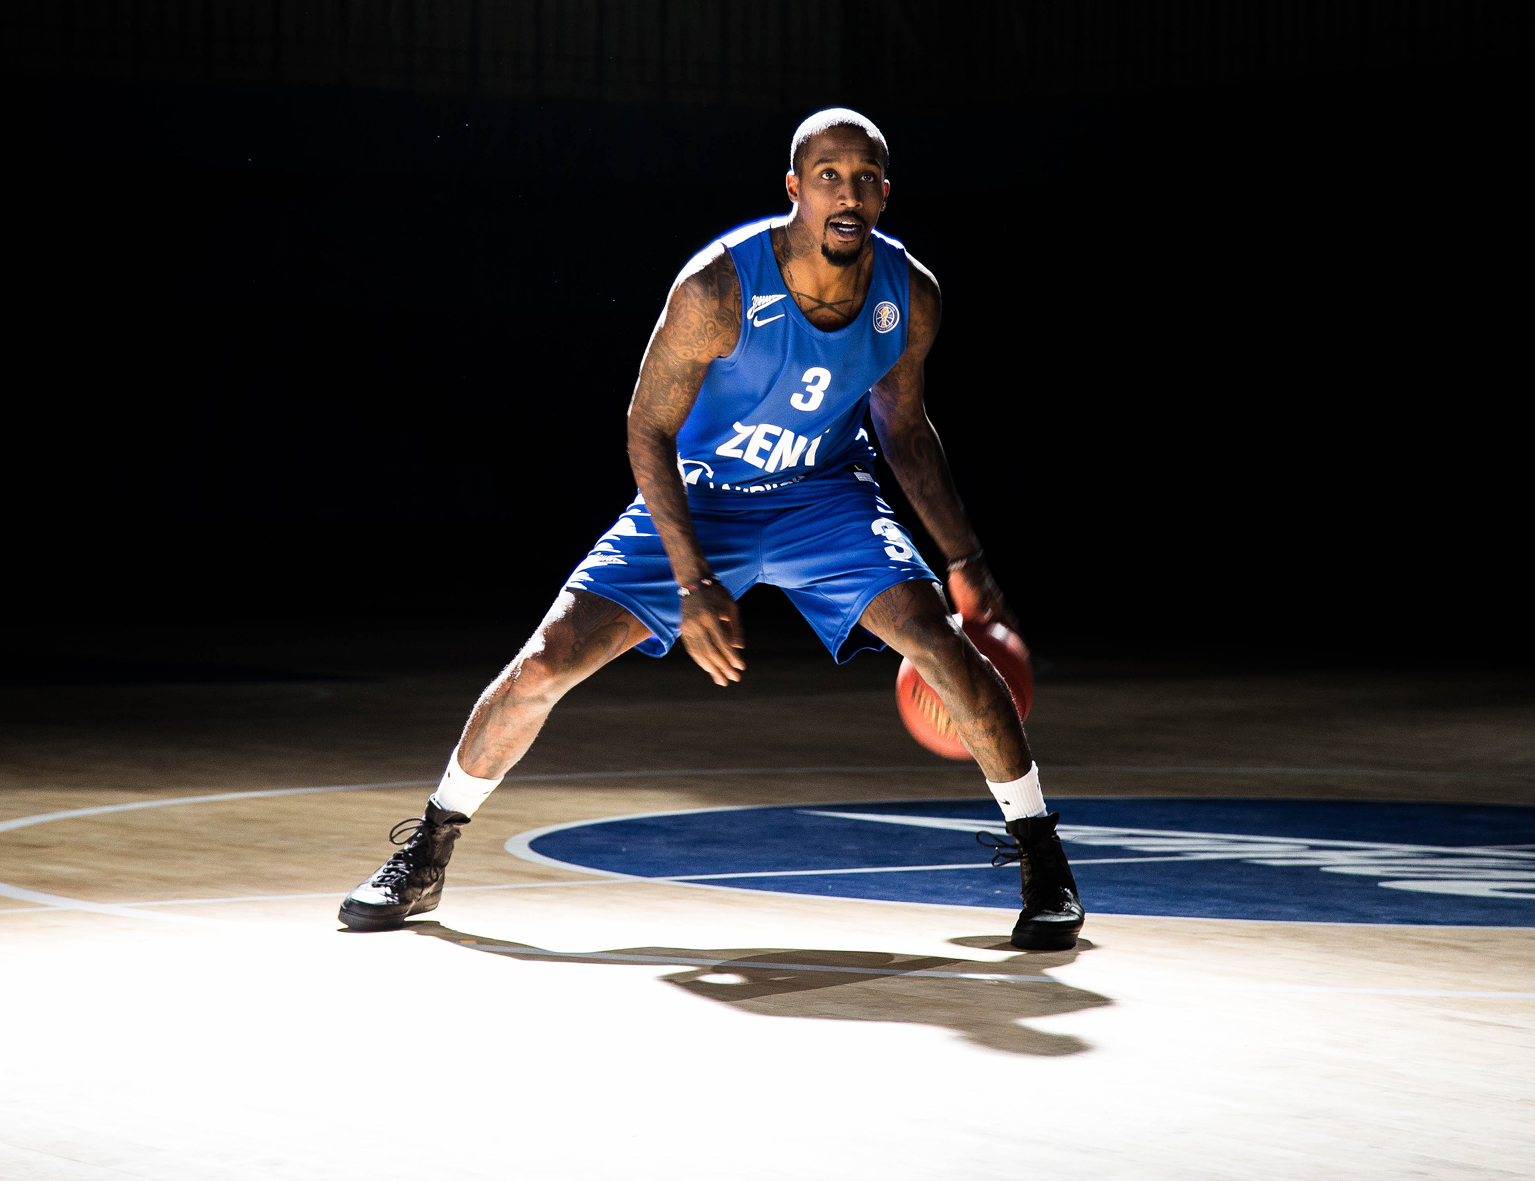 Brandon Jennings: Buy Your Tickets And Get Ready For A Show. I Guarantee It!